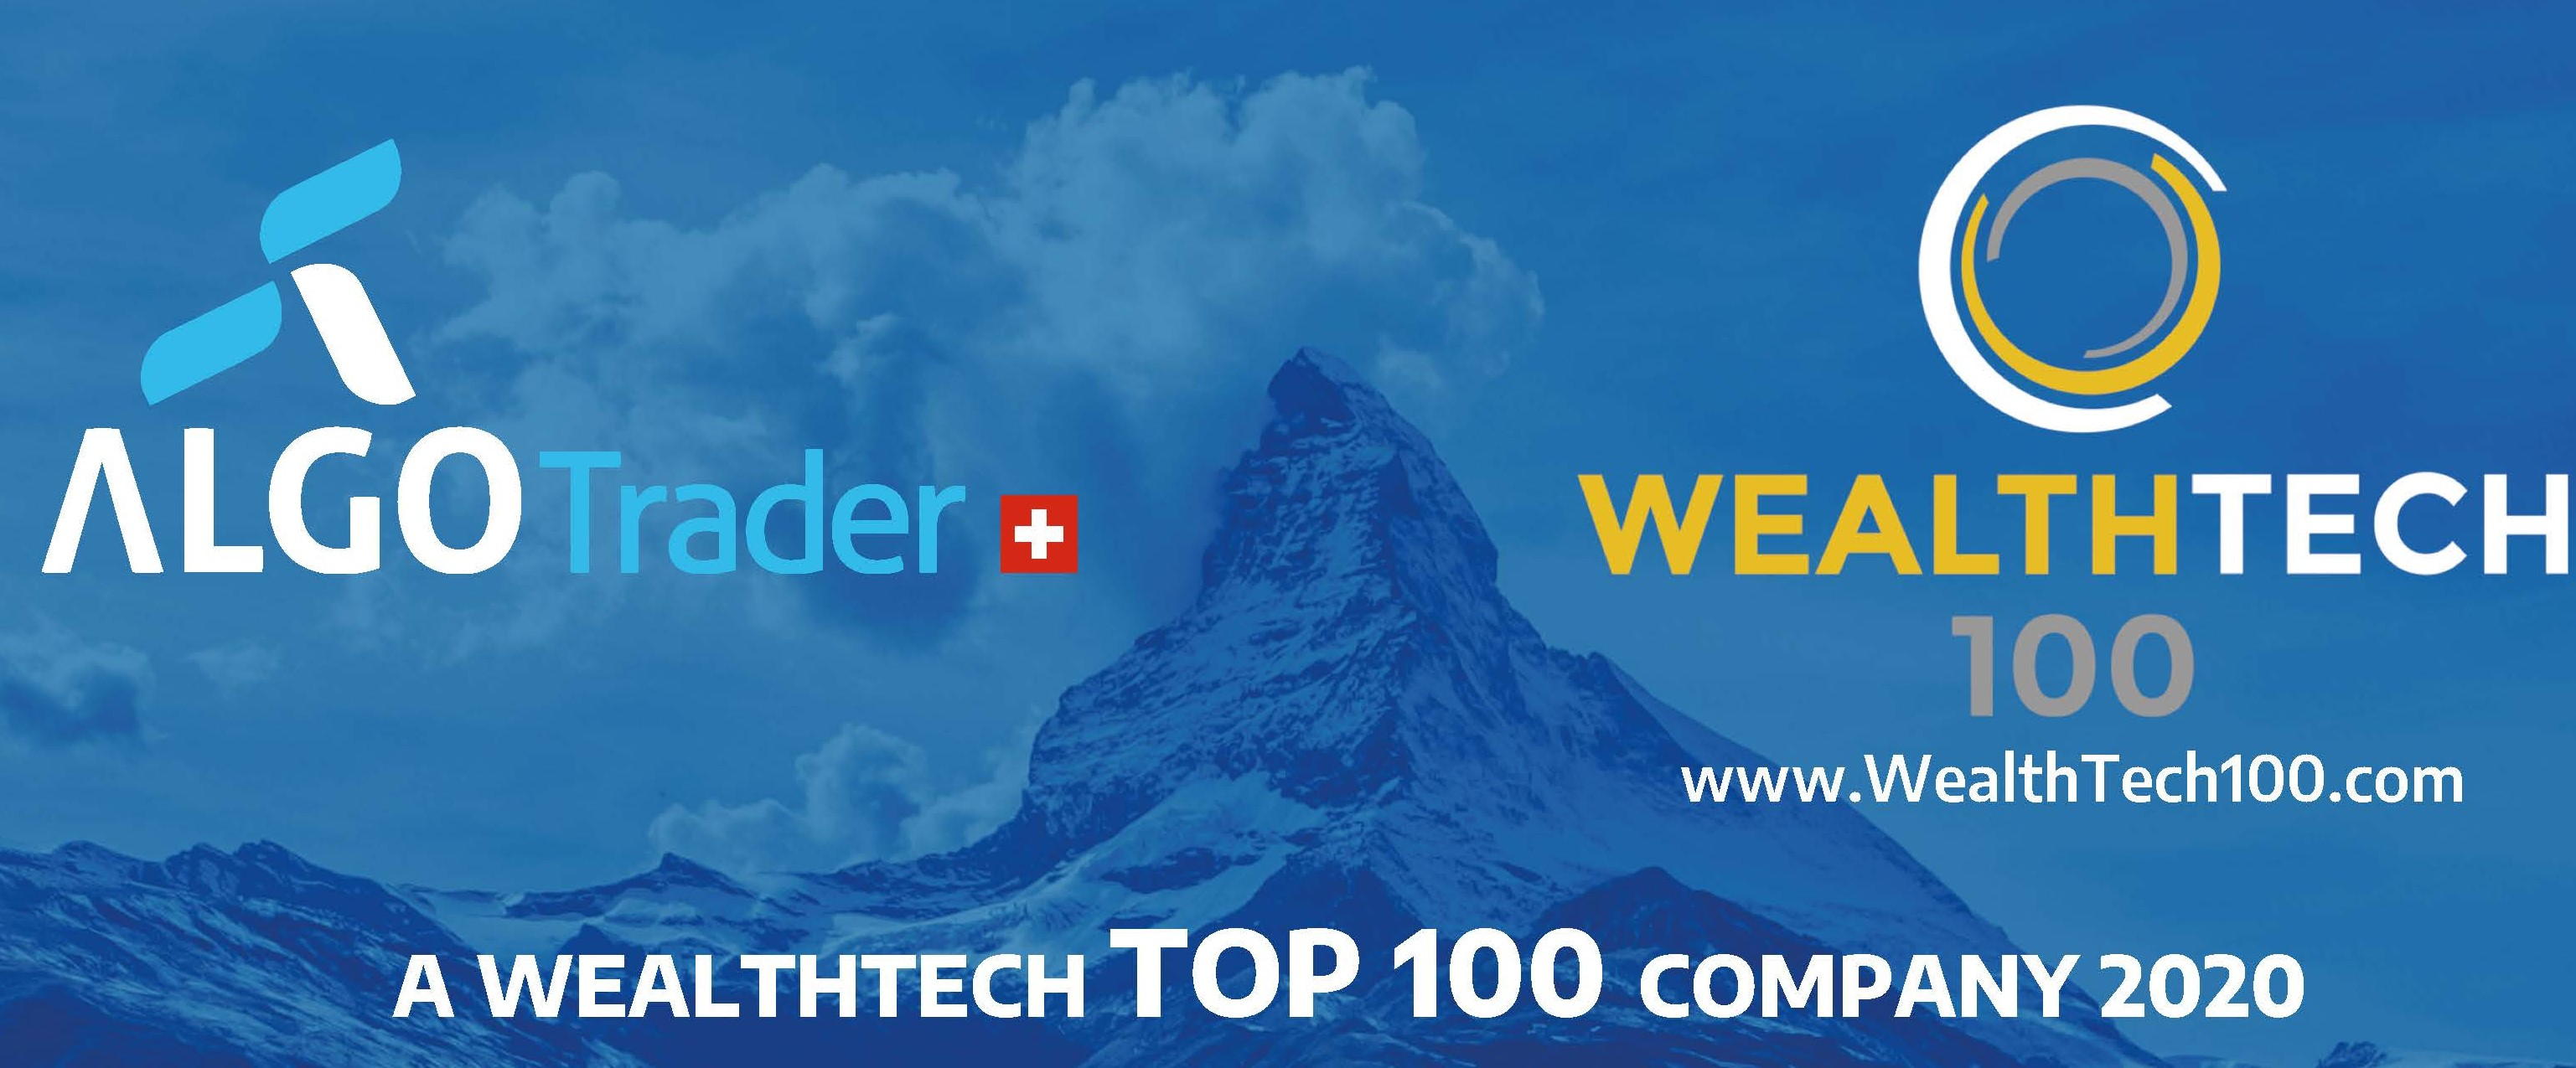 Swiss AlgoTrader AG among the Top 100 WealthTech companies globally